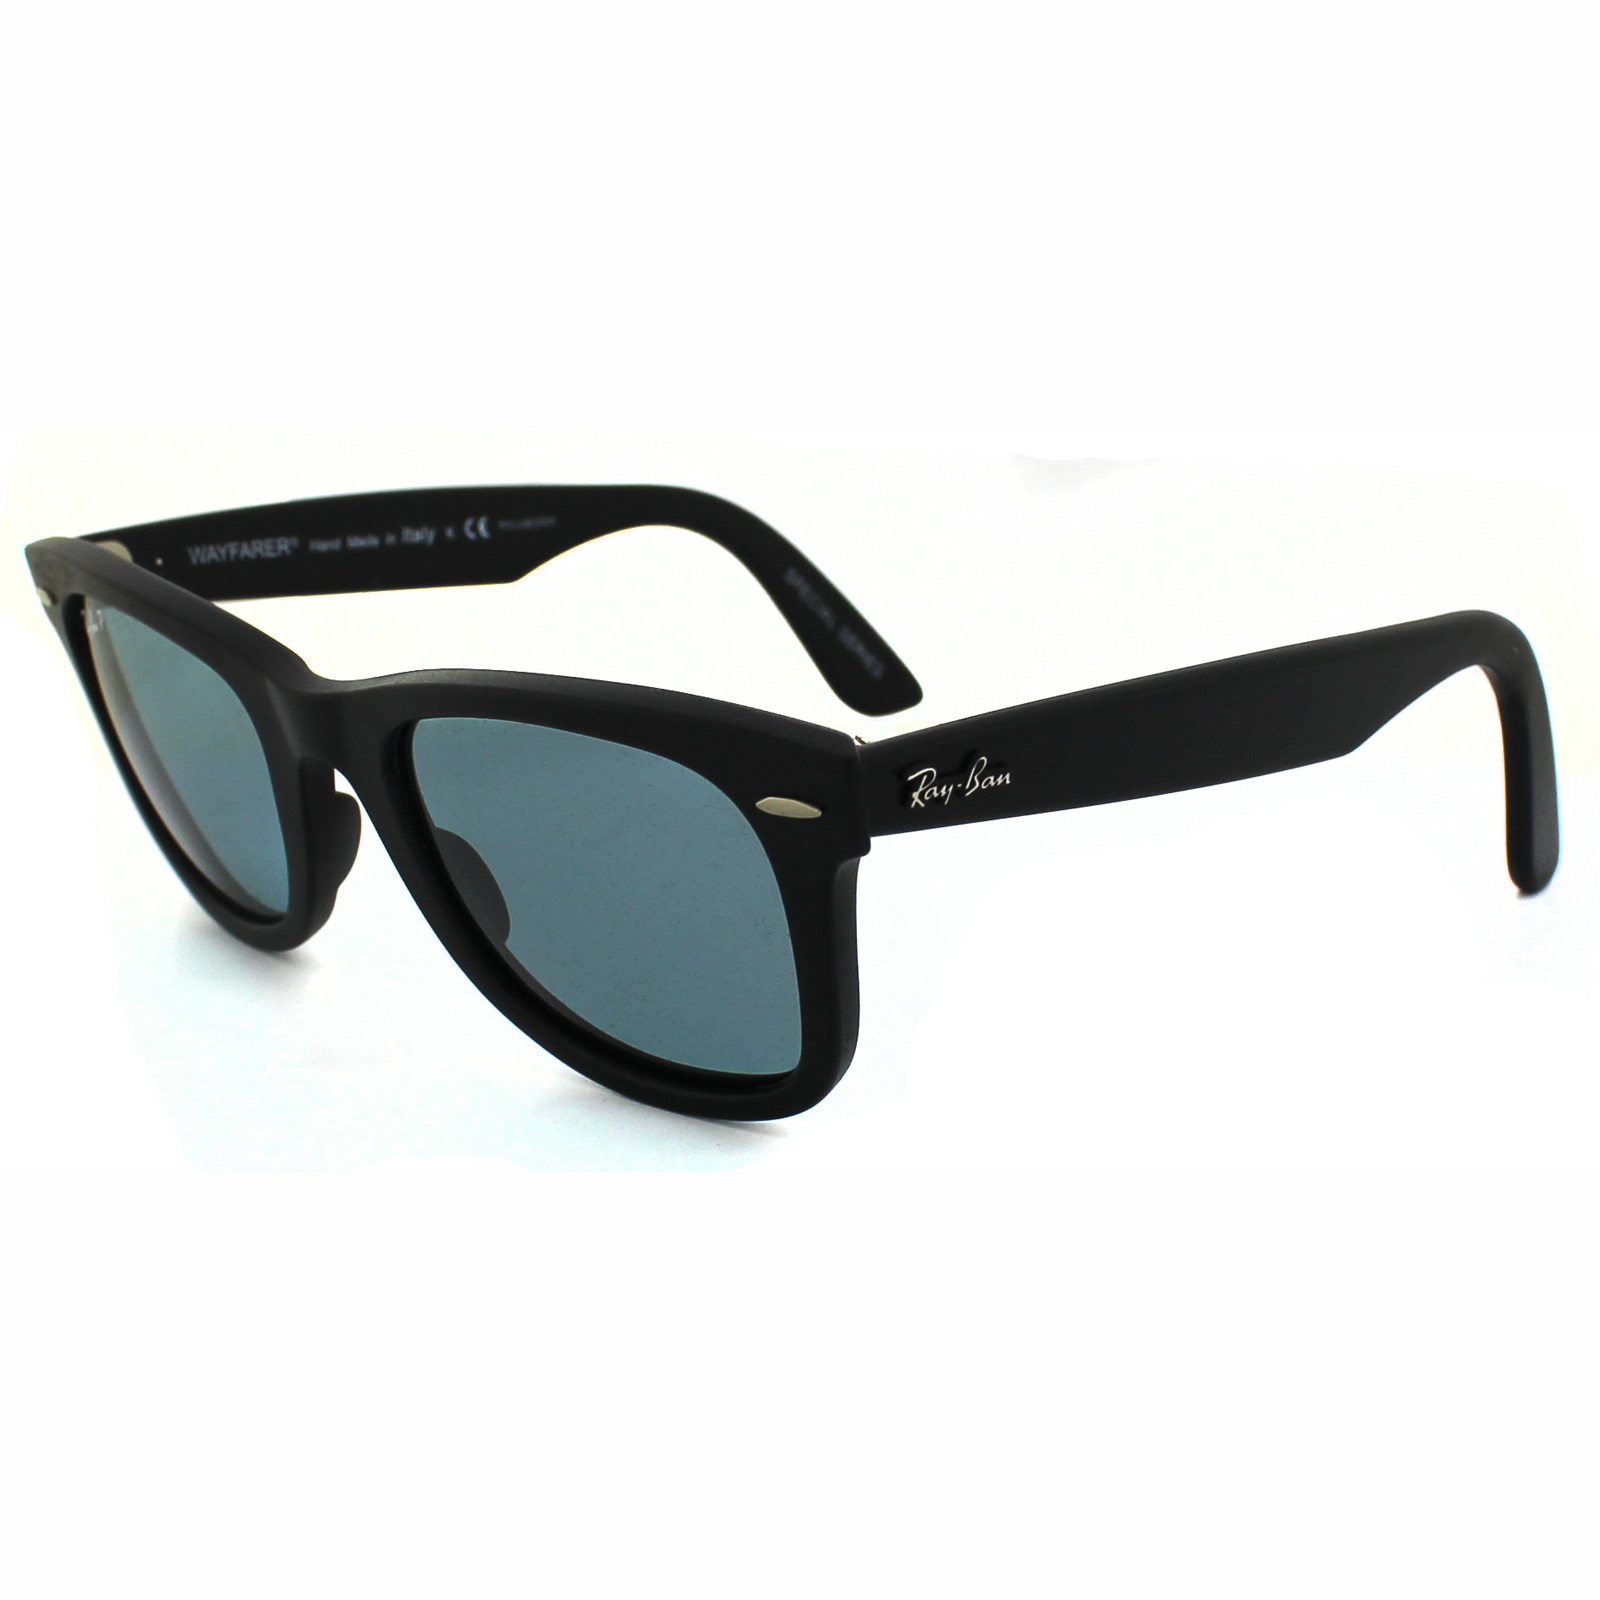 ray ban clubmaster cheap 4e0w  Details about Ray